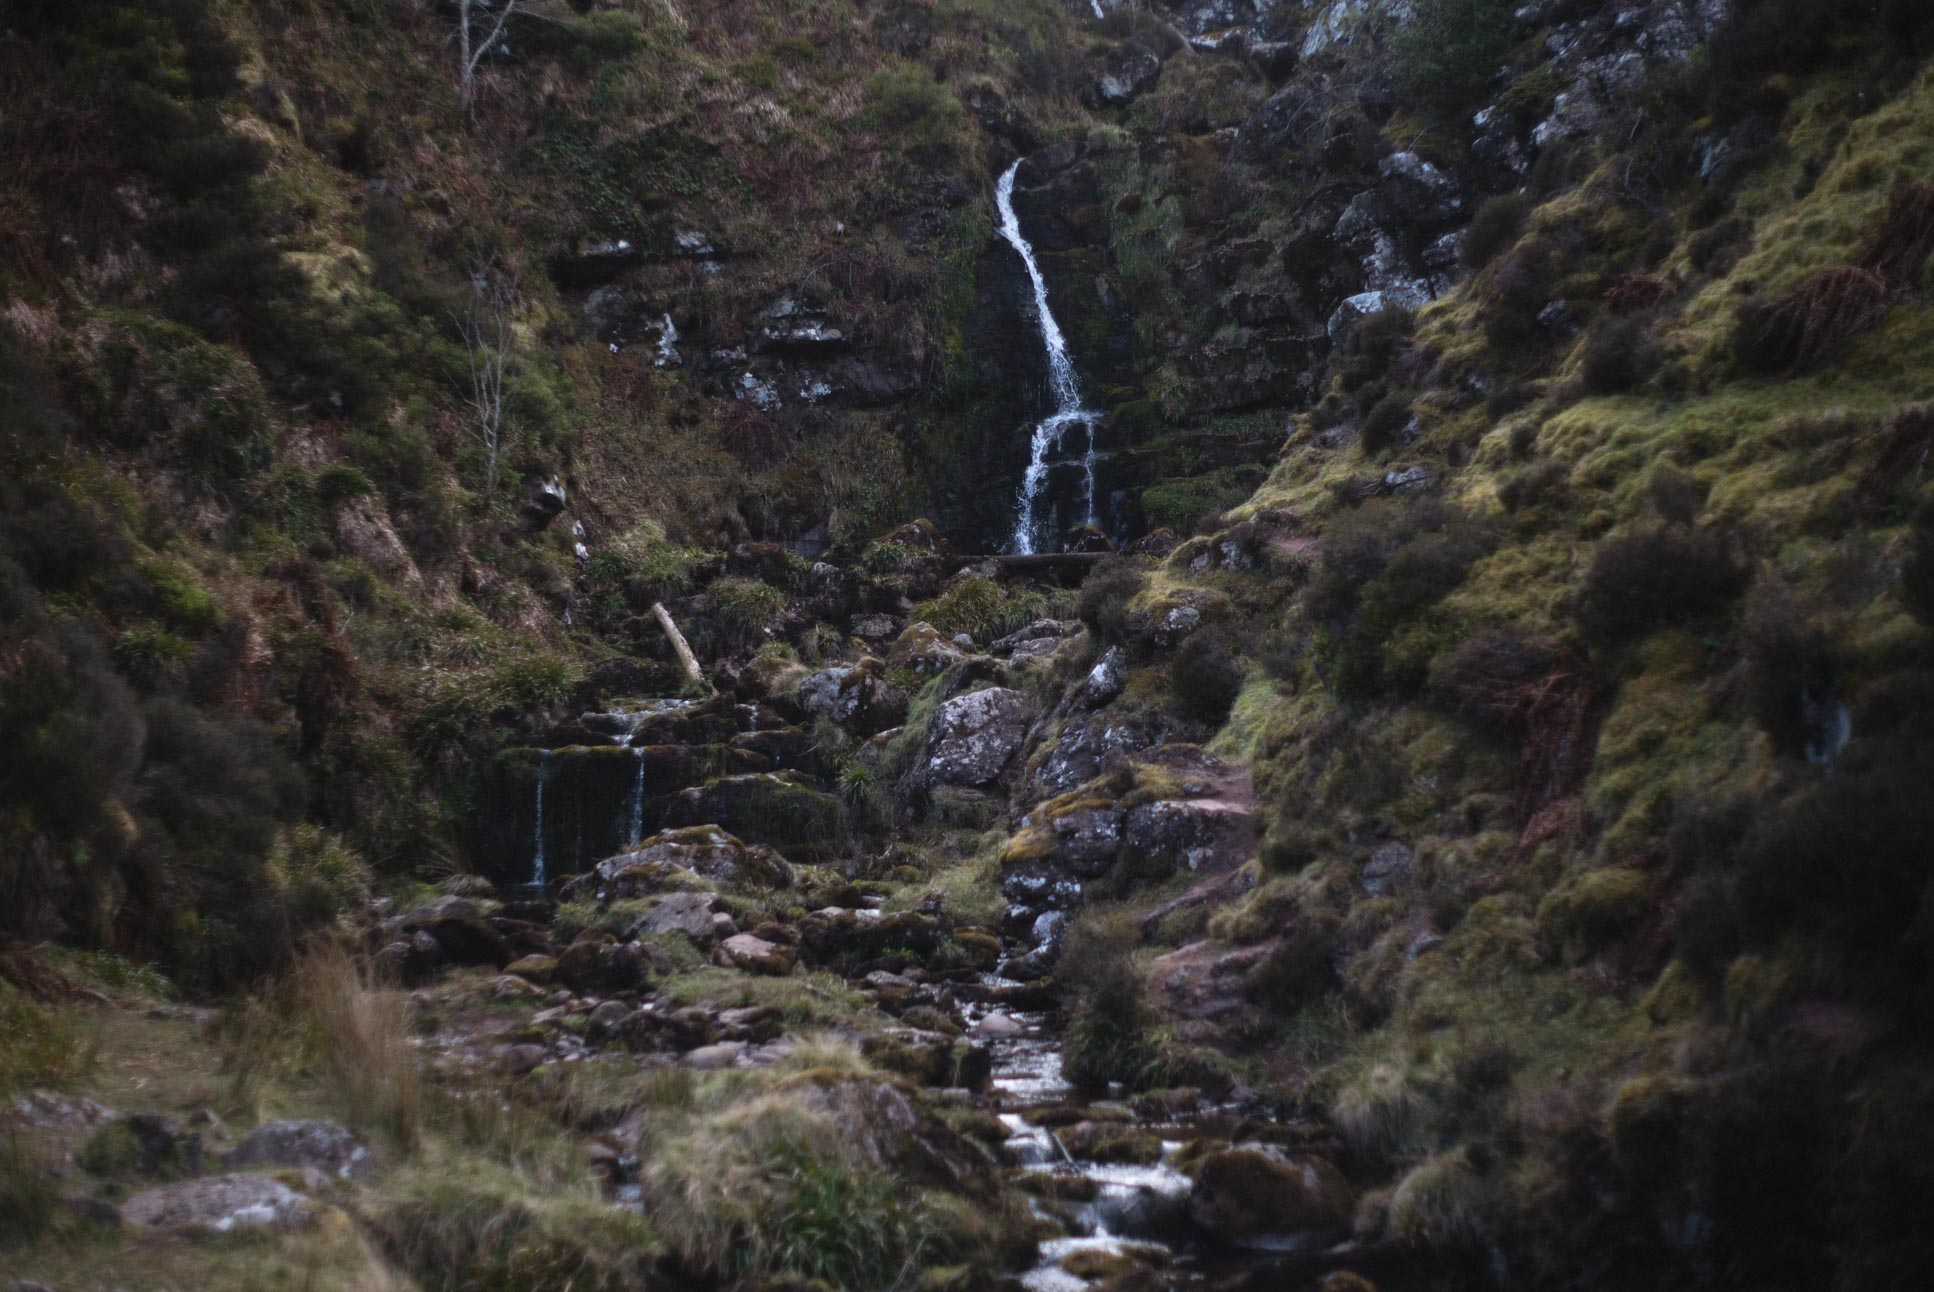 You might walk right past this small waterfall if you don't go looking for it.